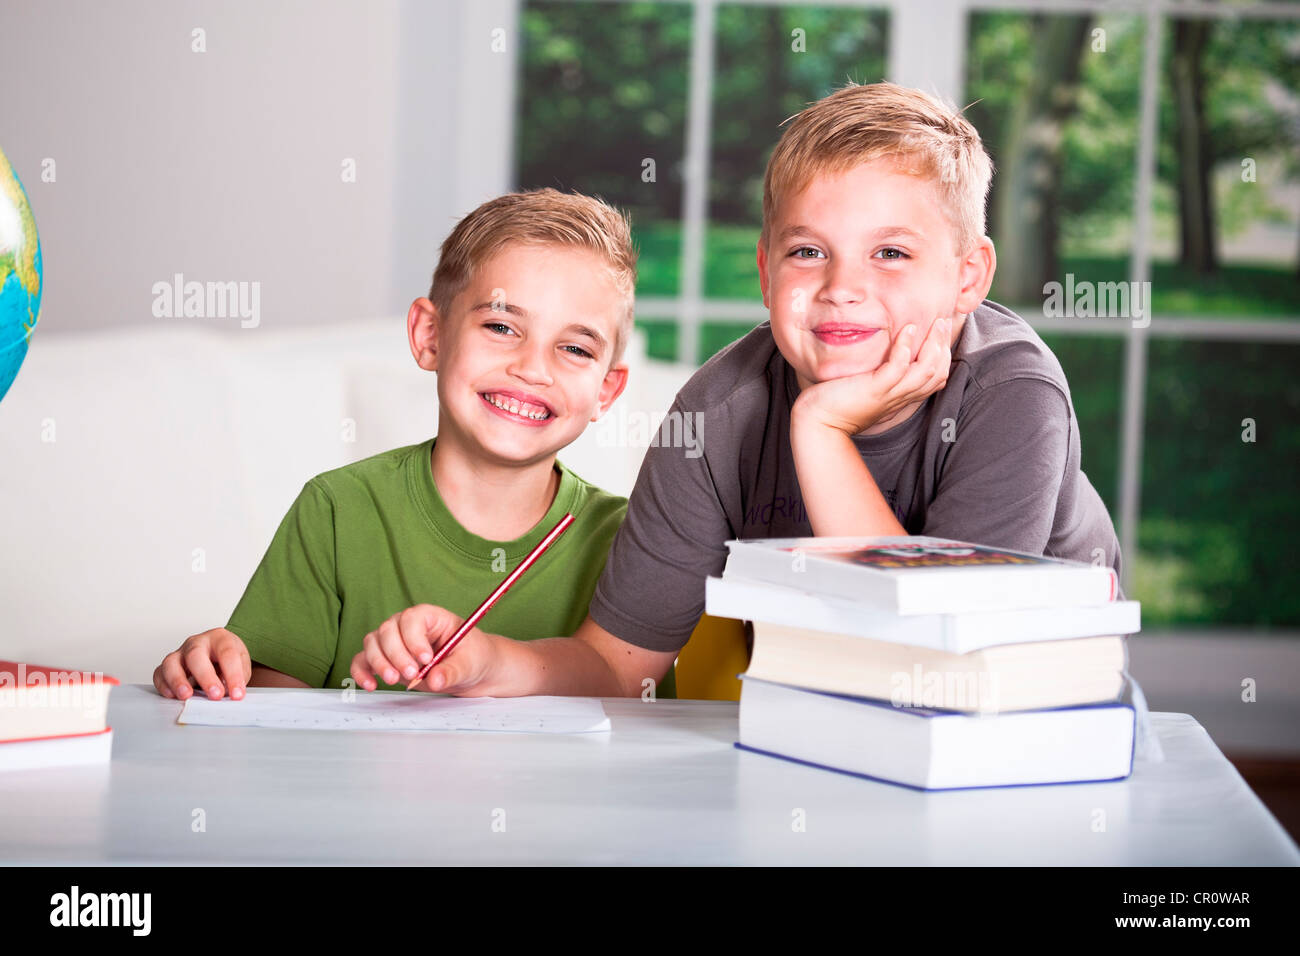 Boy helping his younger brother doing the homework - Stock Image